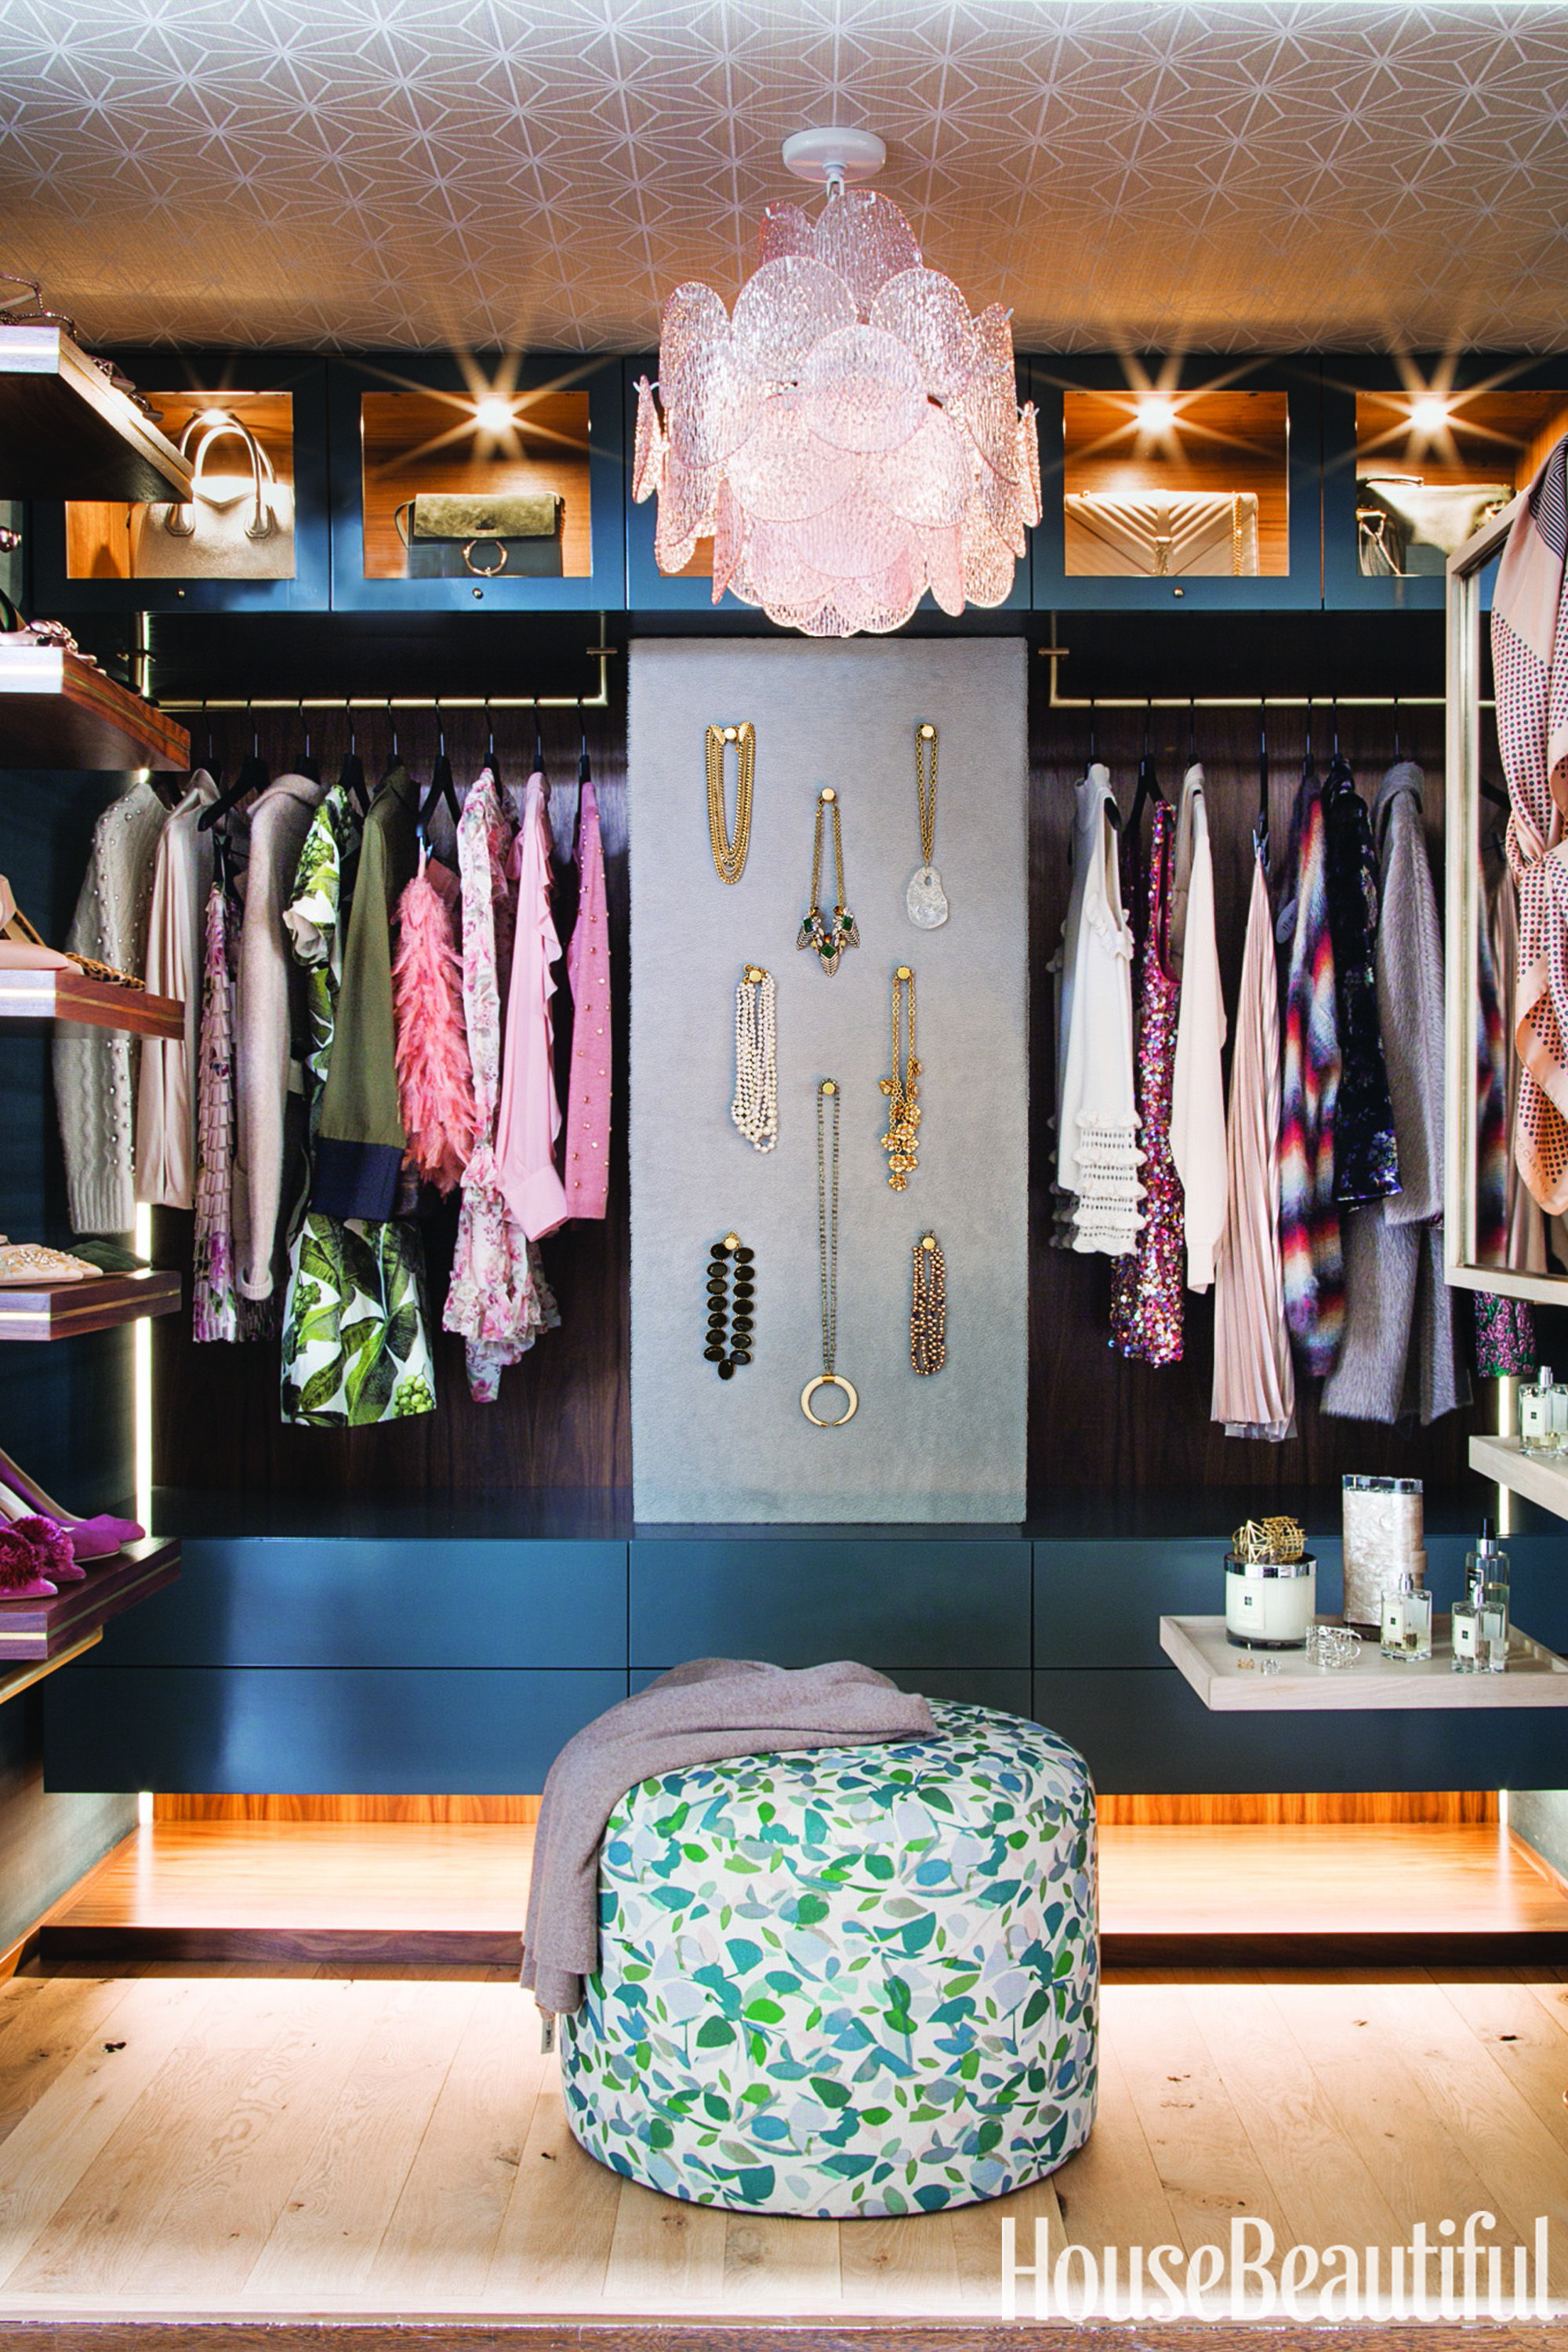 Closet Organizers Share Their Tips for a ClutterFree